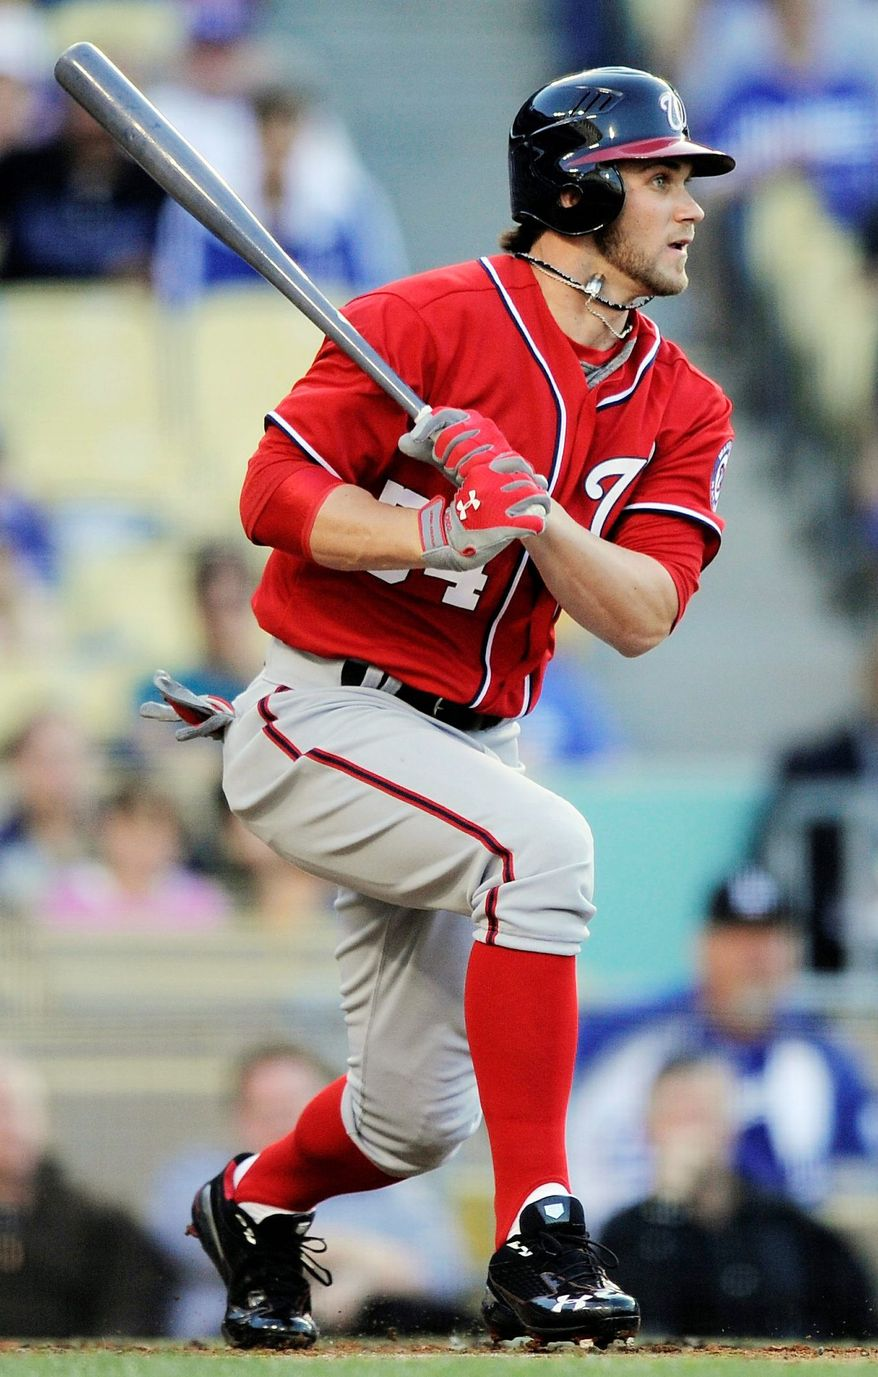 APRIL 28: Injuries to the middle of the order forced general manager Mike Rizzo to call up outfielder Bryce Harper from Triple A Syracuse earlier than planned. The 19-year-old phenom went 1 for 3 in a 4-3 loss to the Dodgers in his debut and has never looked back.